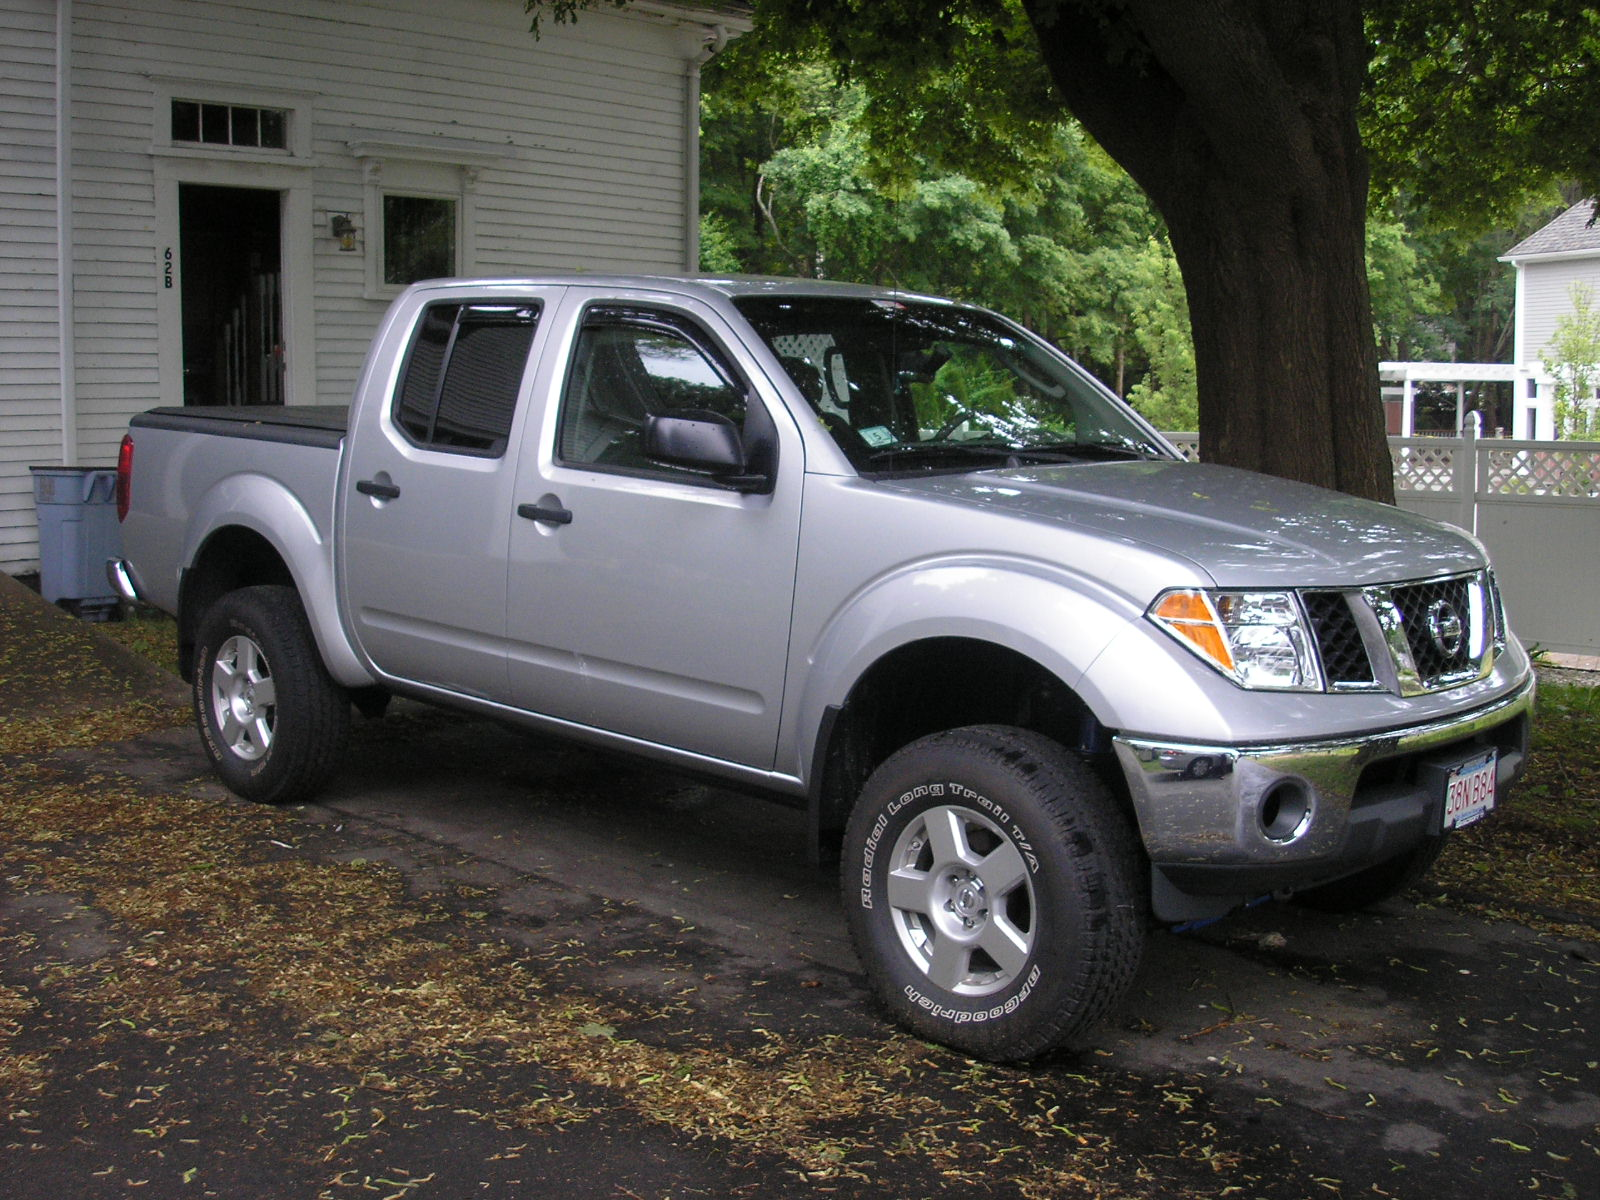 Nissan Frontier 4x4 Crew Cab For Sale 2007 Nissan Frontier Lifted Frontier Photo 21 Pictures to pin on ...